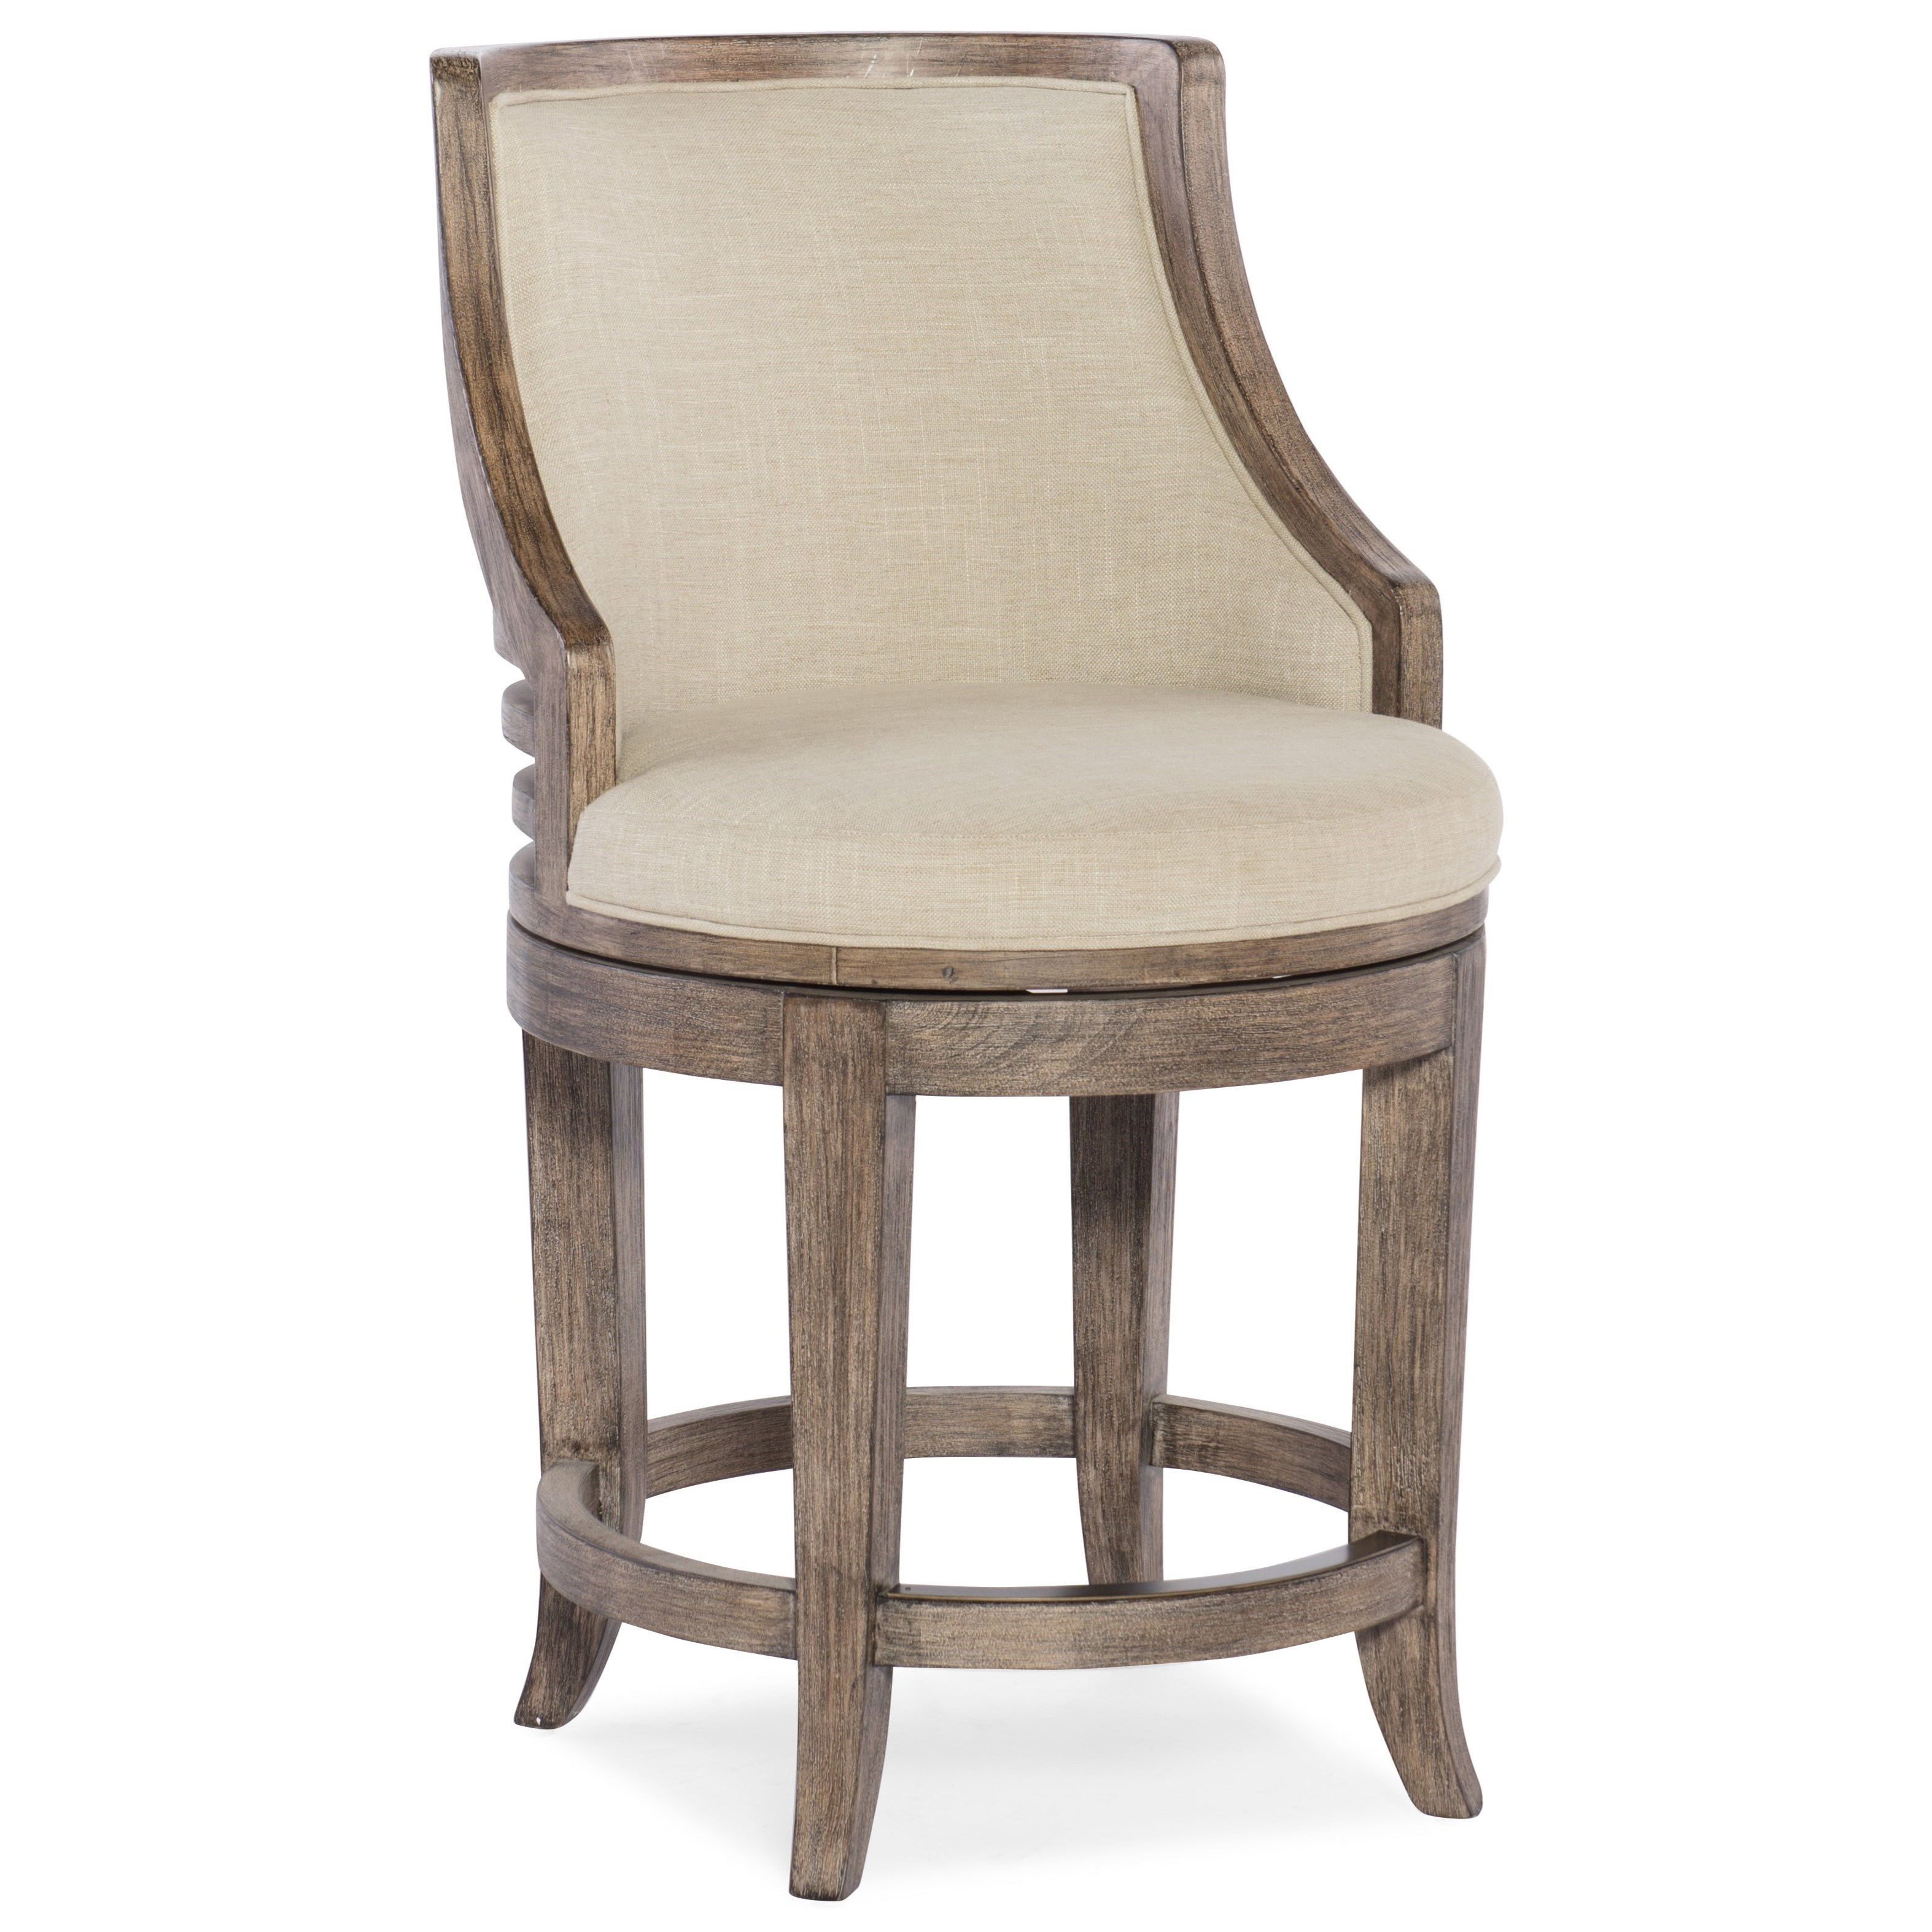 Stools Medium Lainey Transitional Counter Stool at Williams & Kay